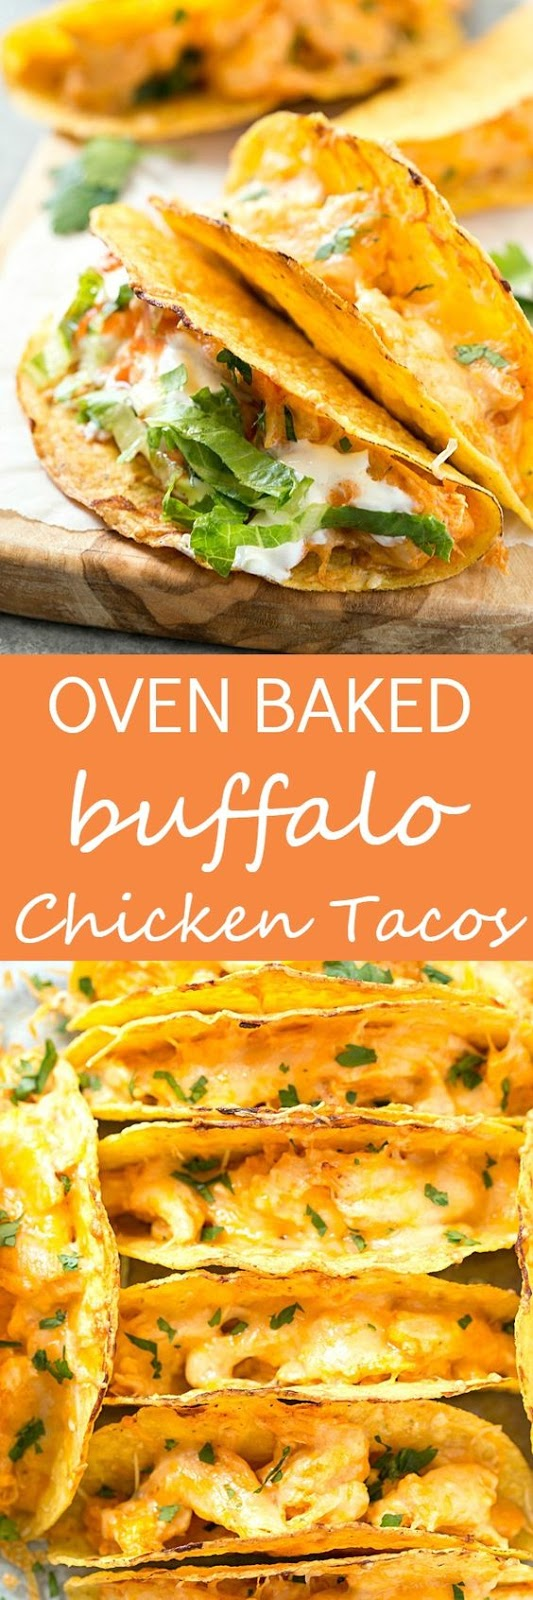 OVEN BAKED BUFFALO CHICKEN TACOS